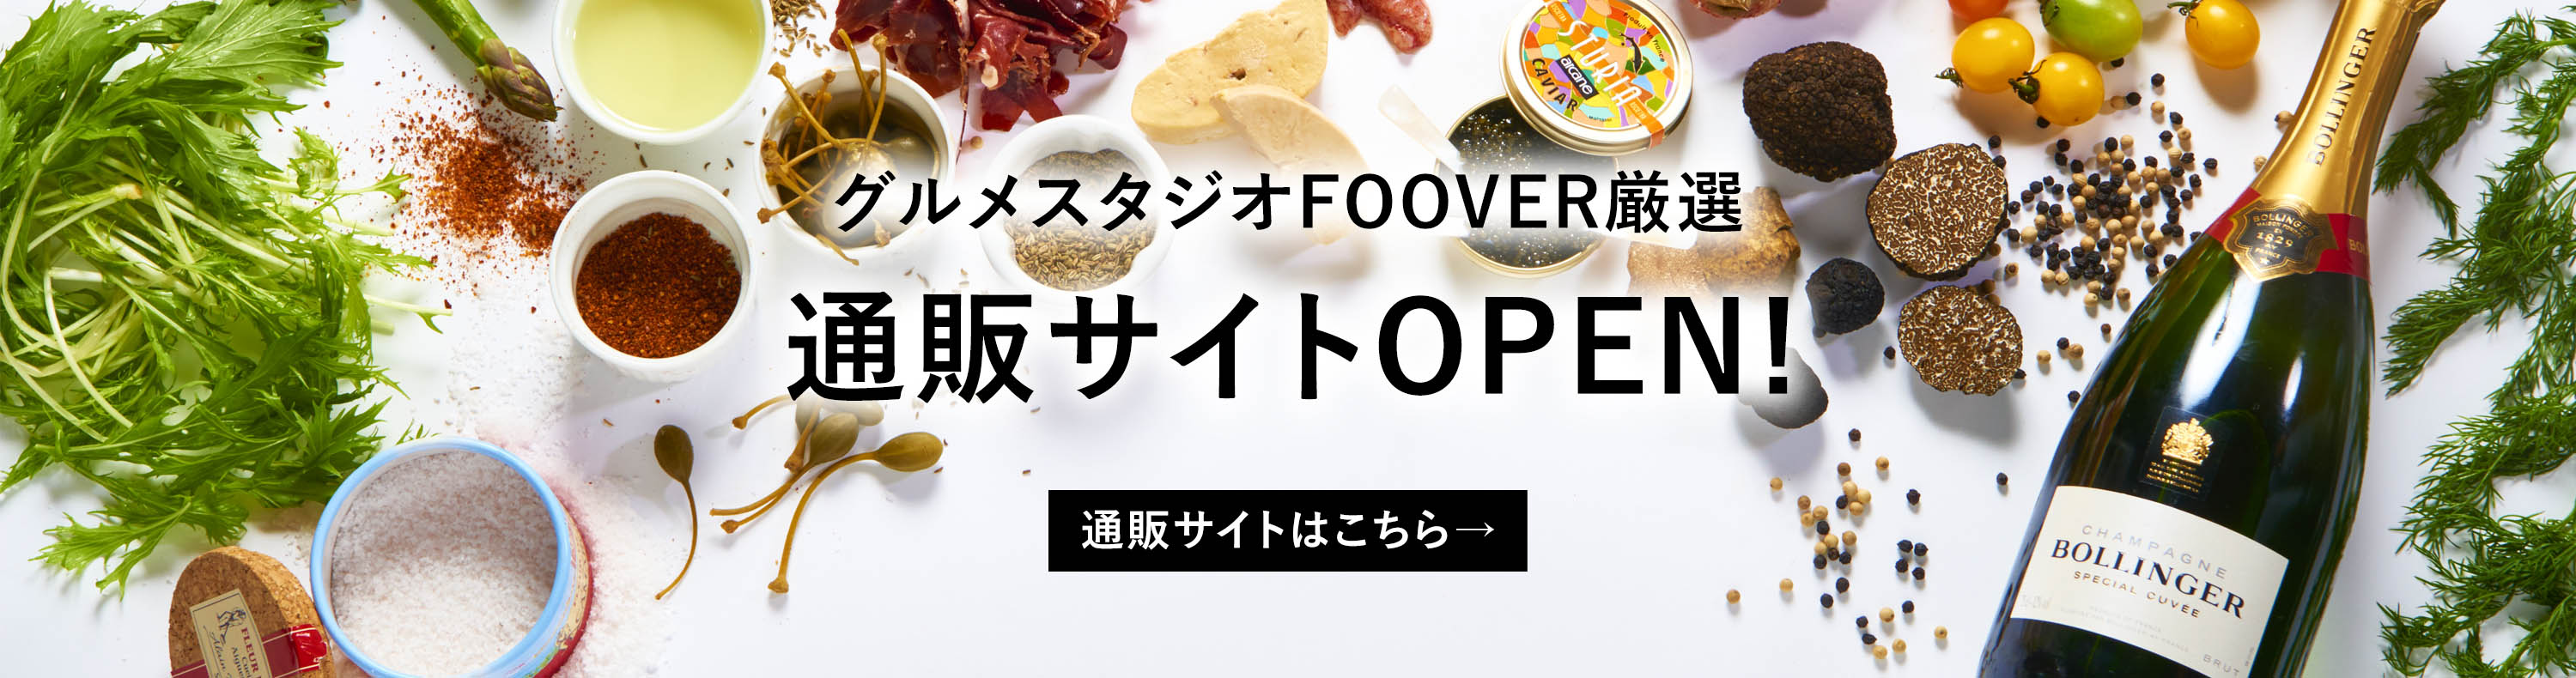 FOOVER 通販サイトOPEN